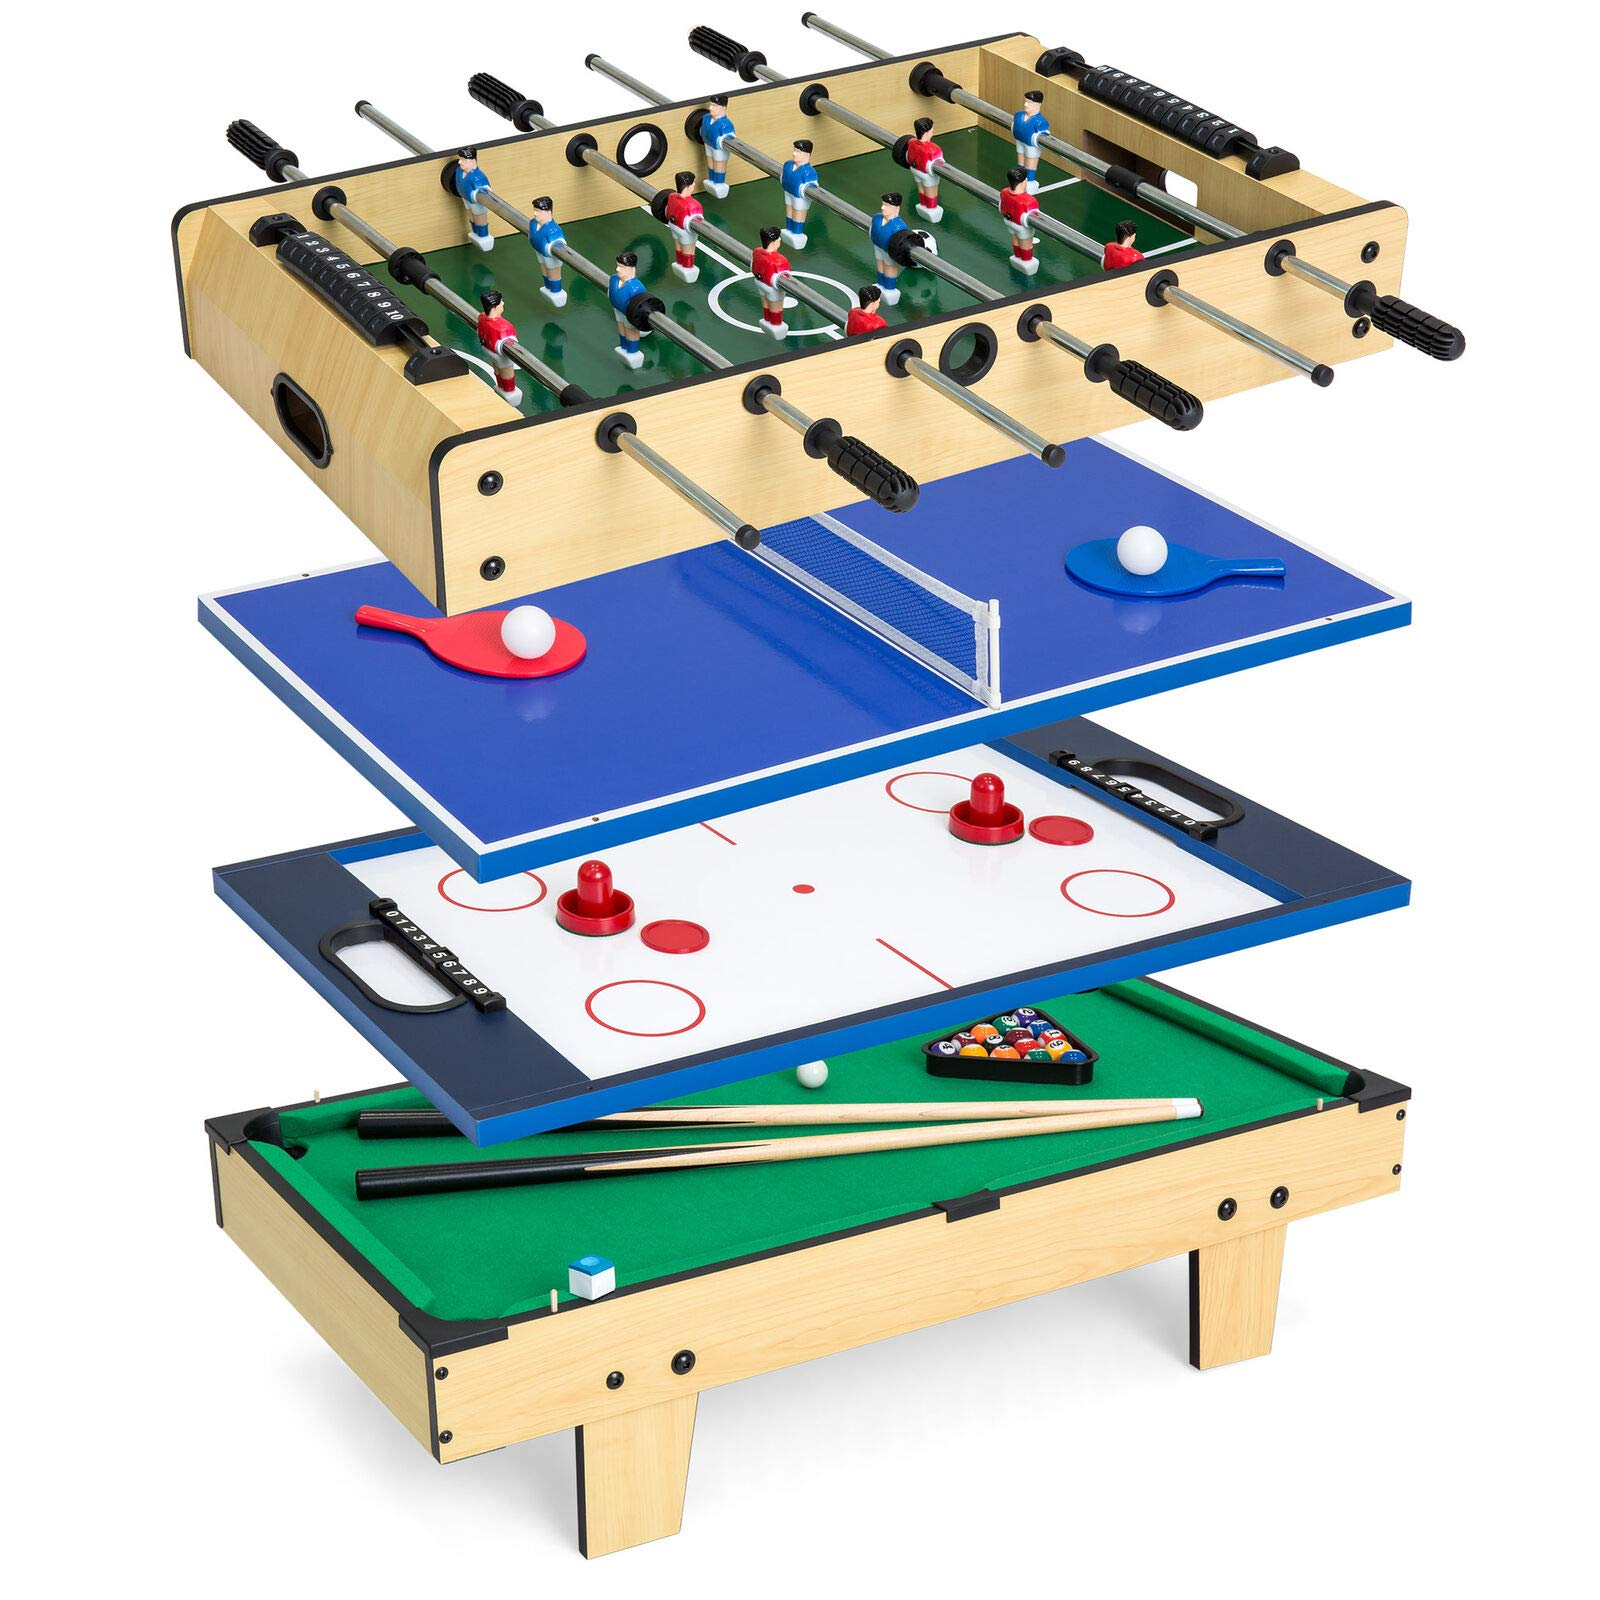 4-in-1 Multi Arcade Game Combination Table Set Surface for Air Hockey Table Tennis Billiards Foosball Perfect for Party and Family Gatherings Ideal for Kids Children and Adults Great Birthday Gift